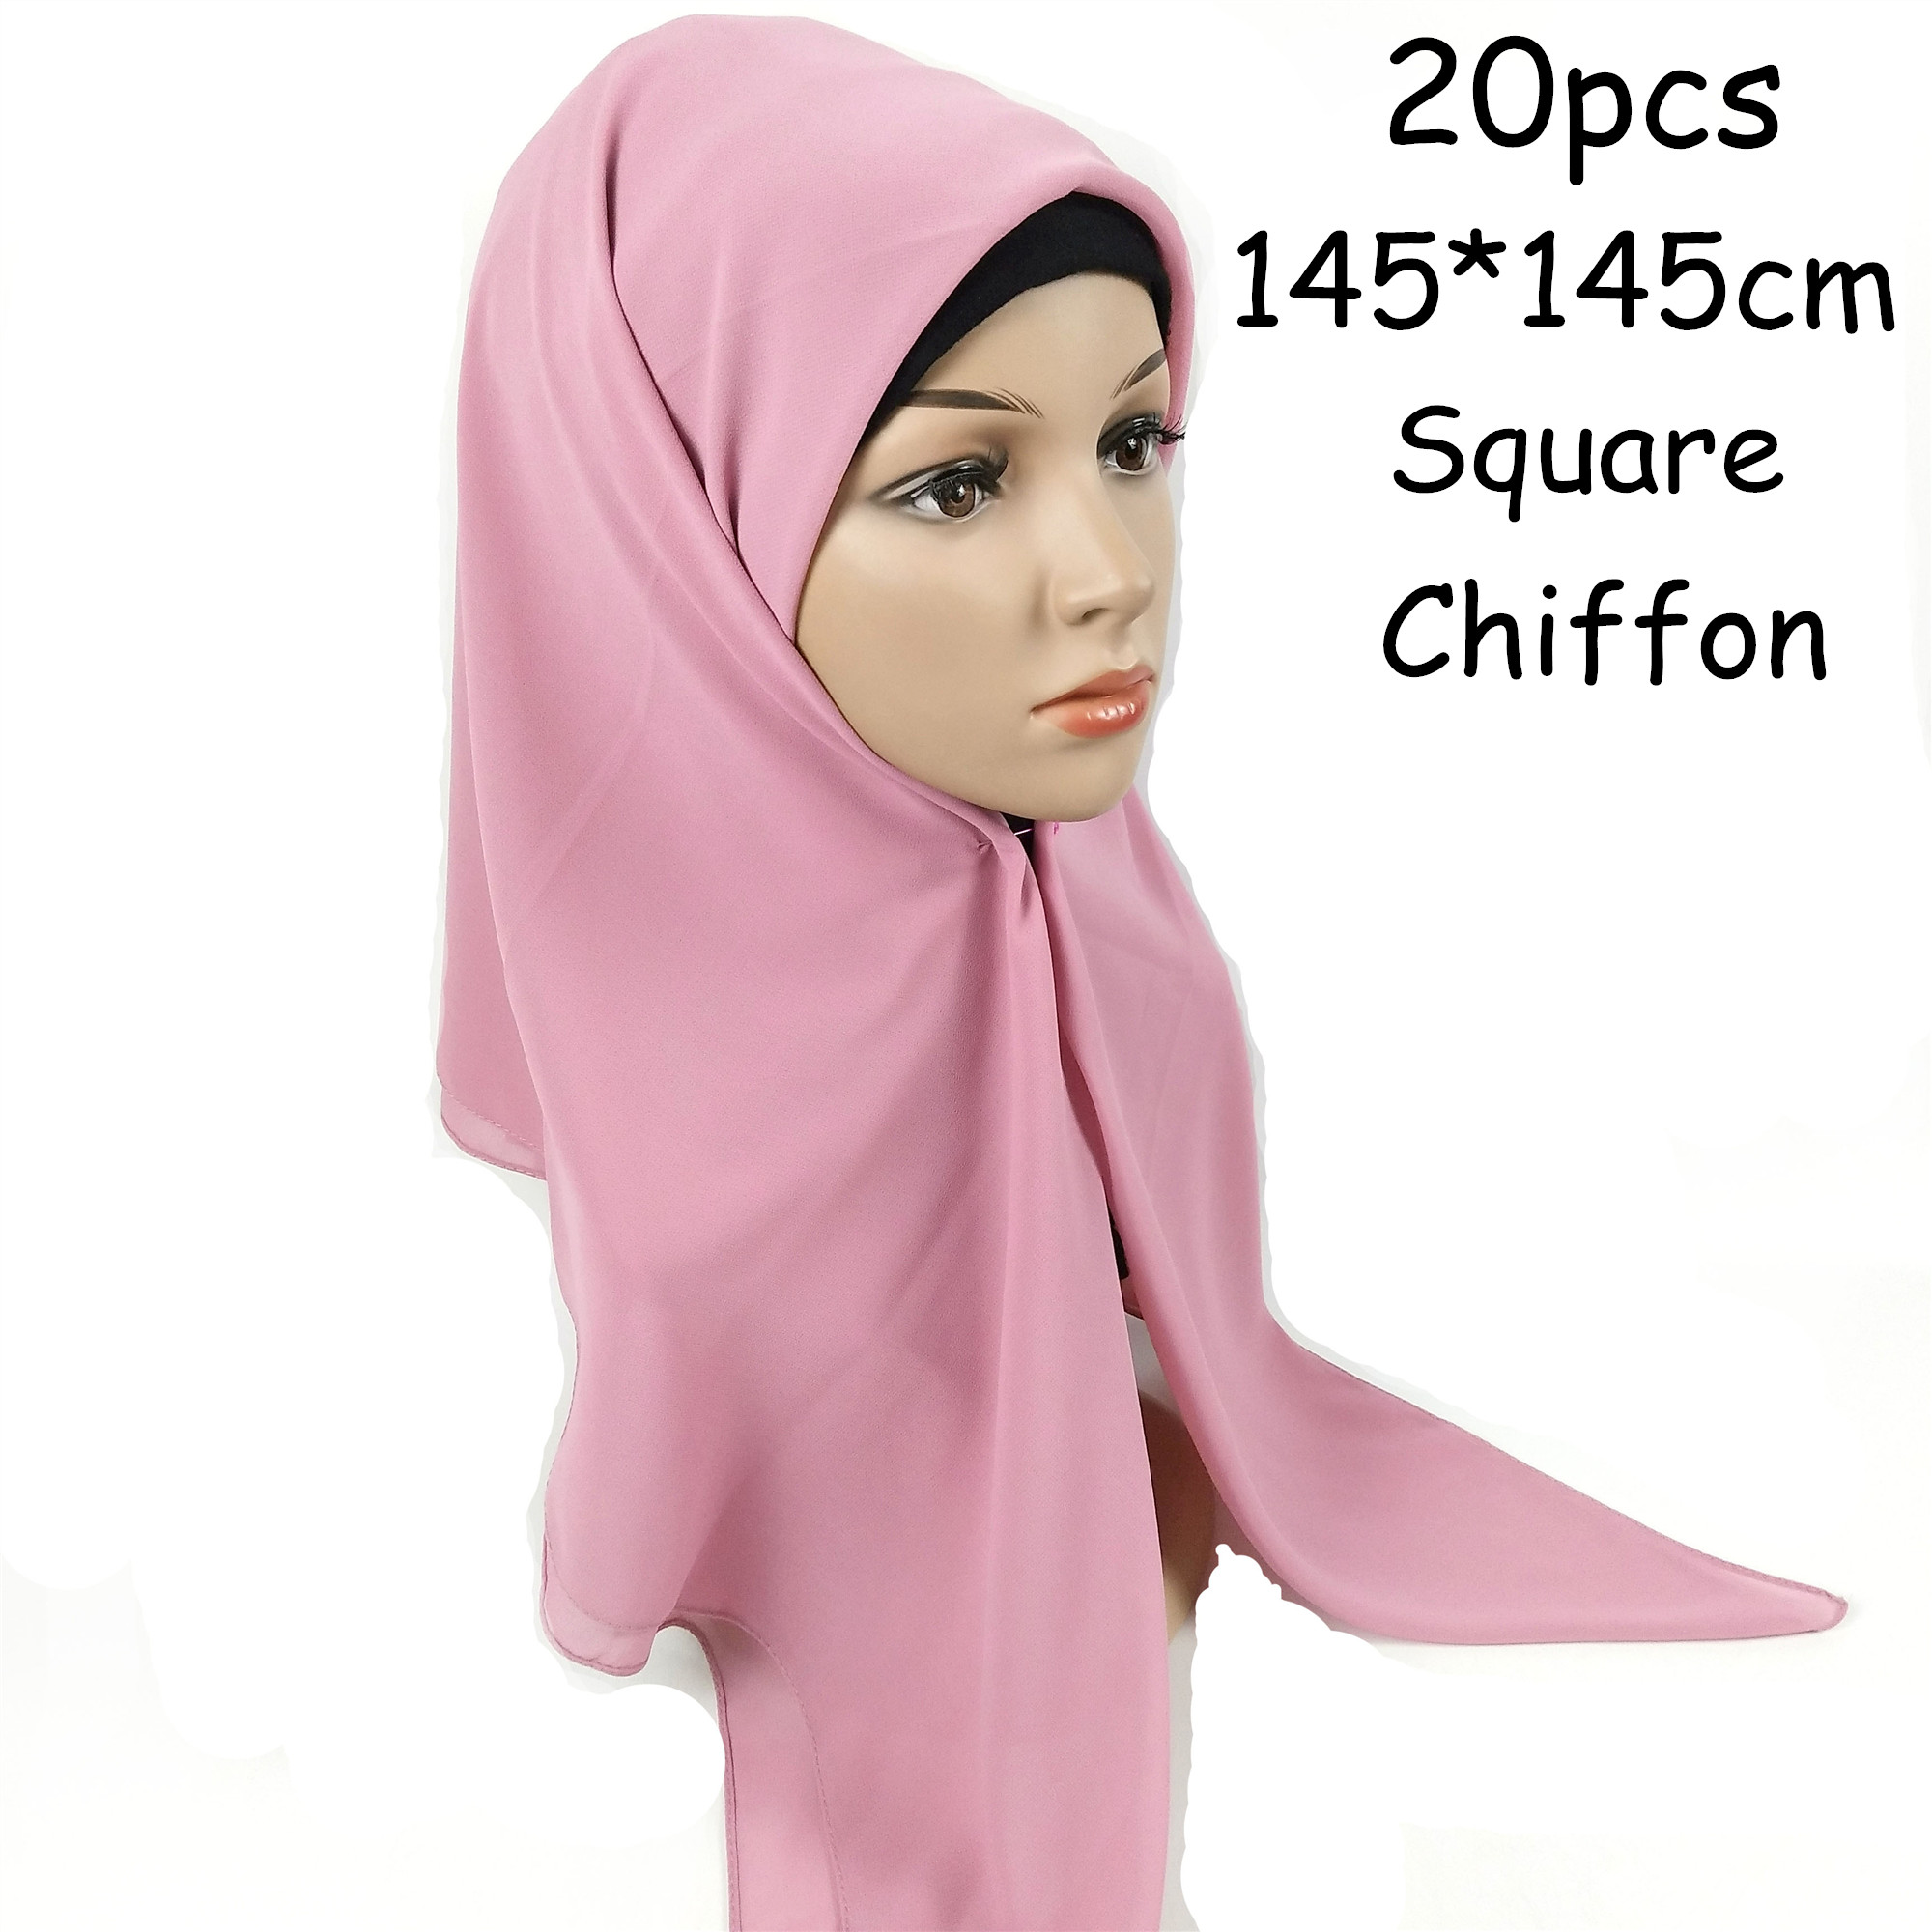 H1 20PCS High quality square chiffon hijab   scarf   shawl 145 * 145cm square chiffon women   scarves     wrap   headband